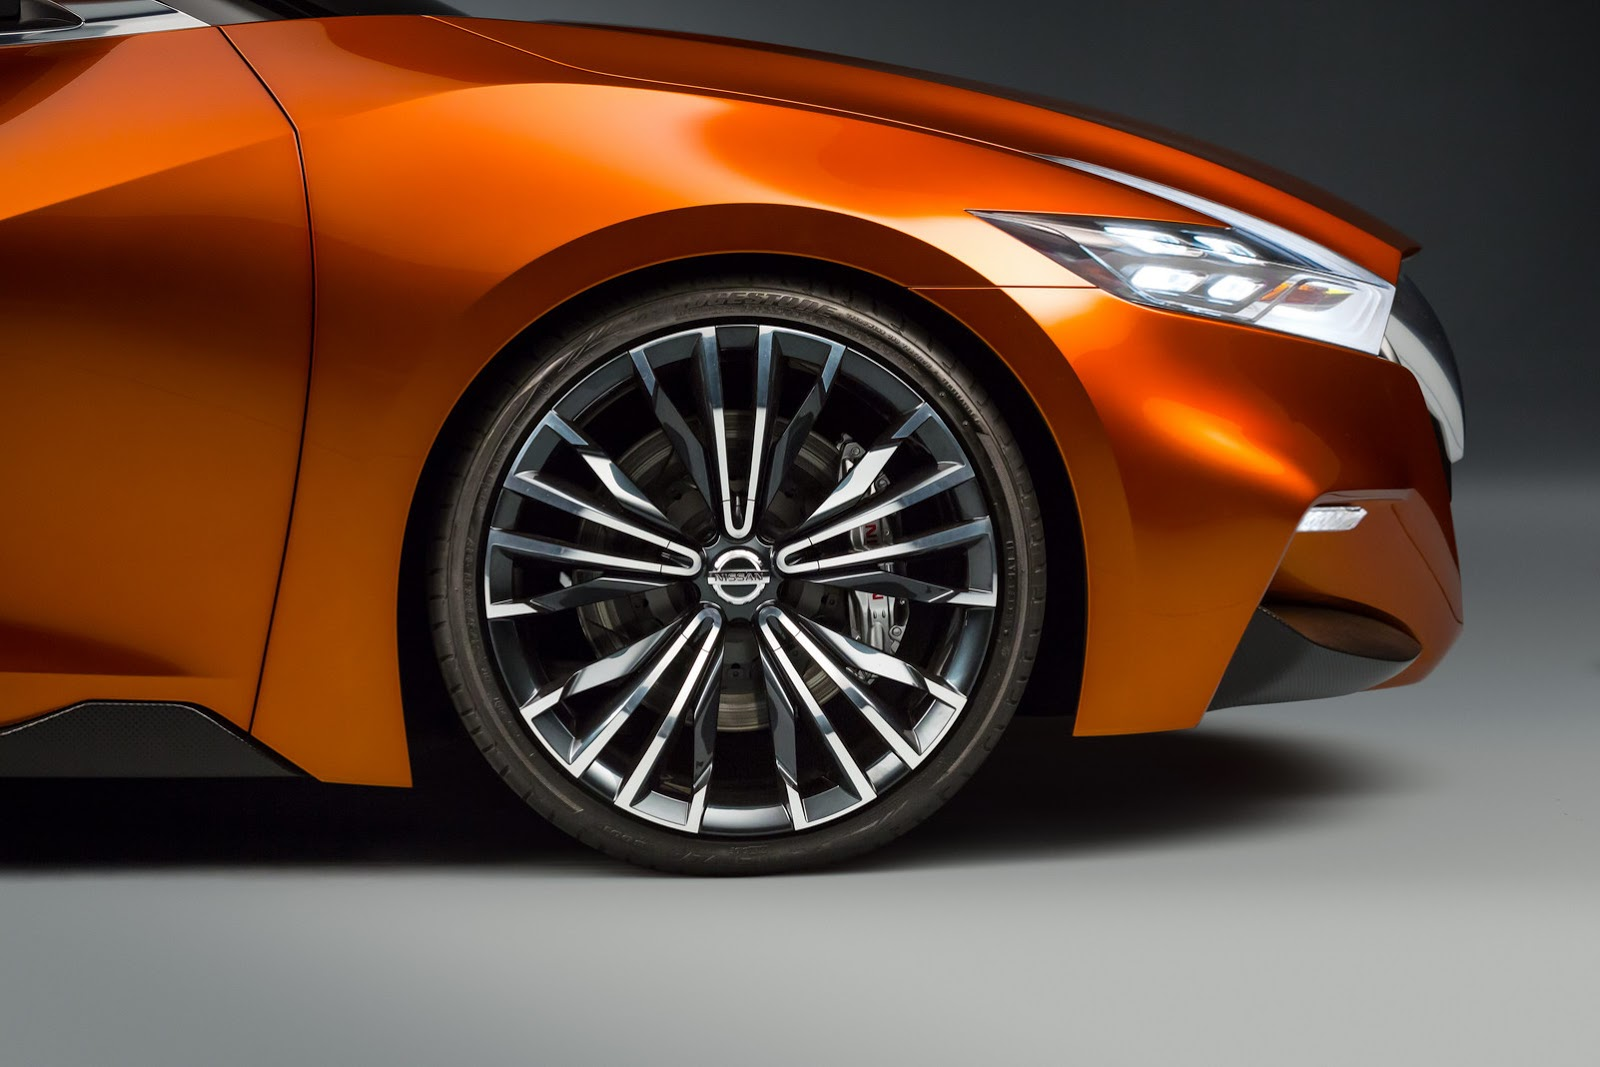 Nissan Cars News Sport Sedan Concept Unveiled